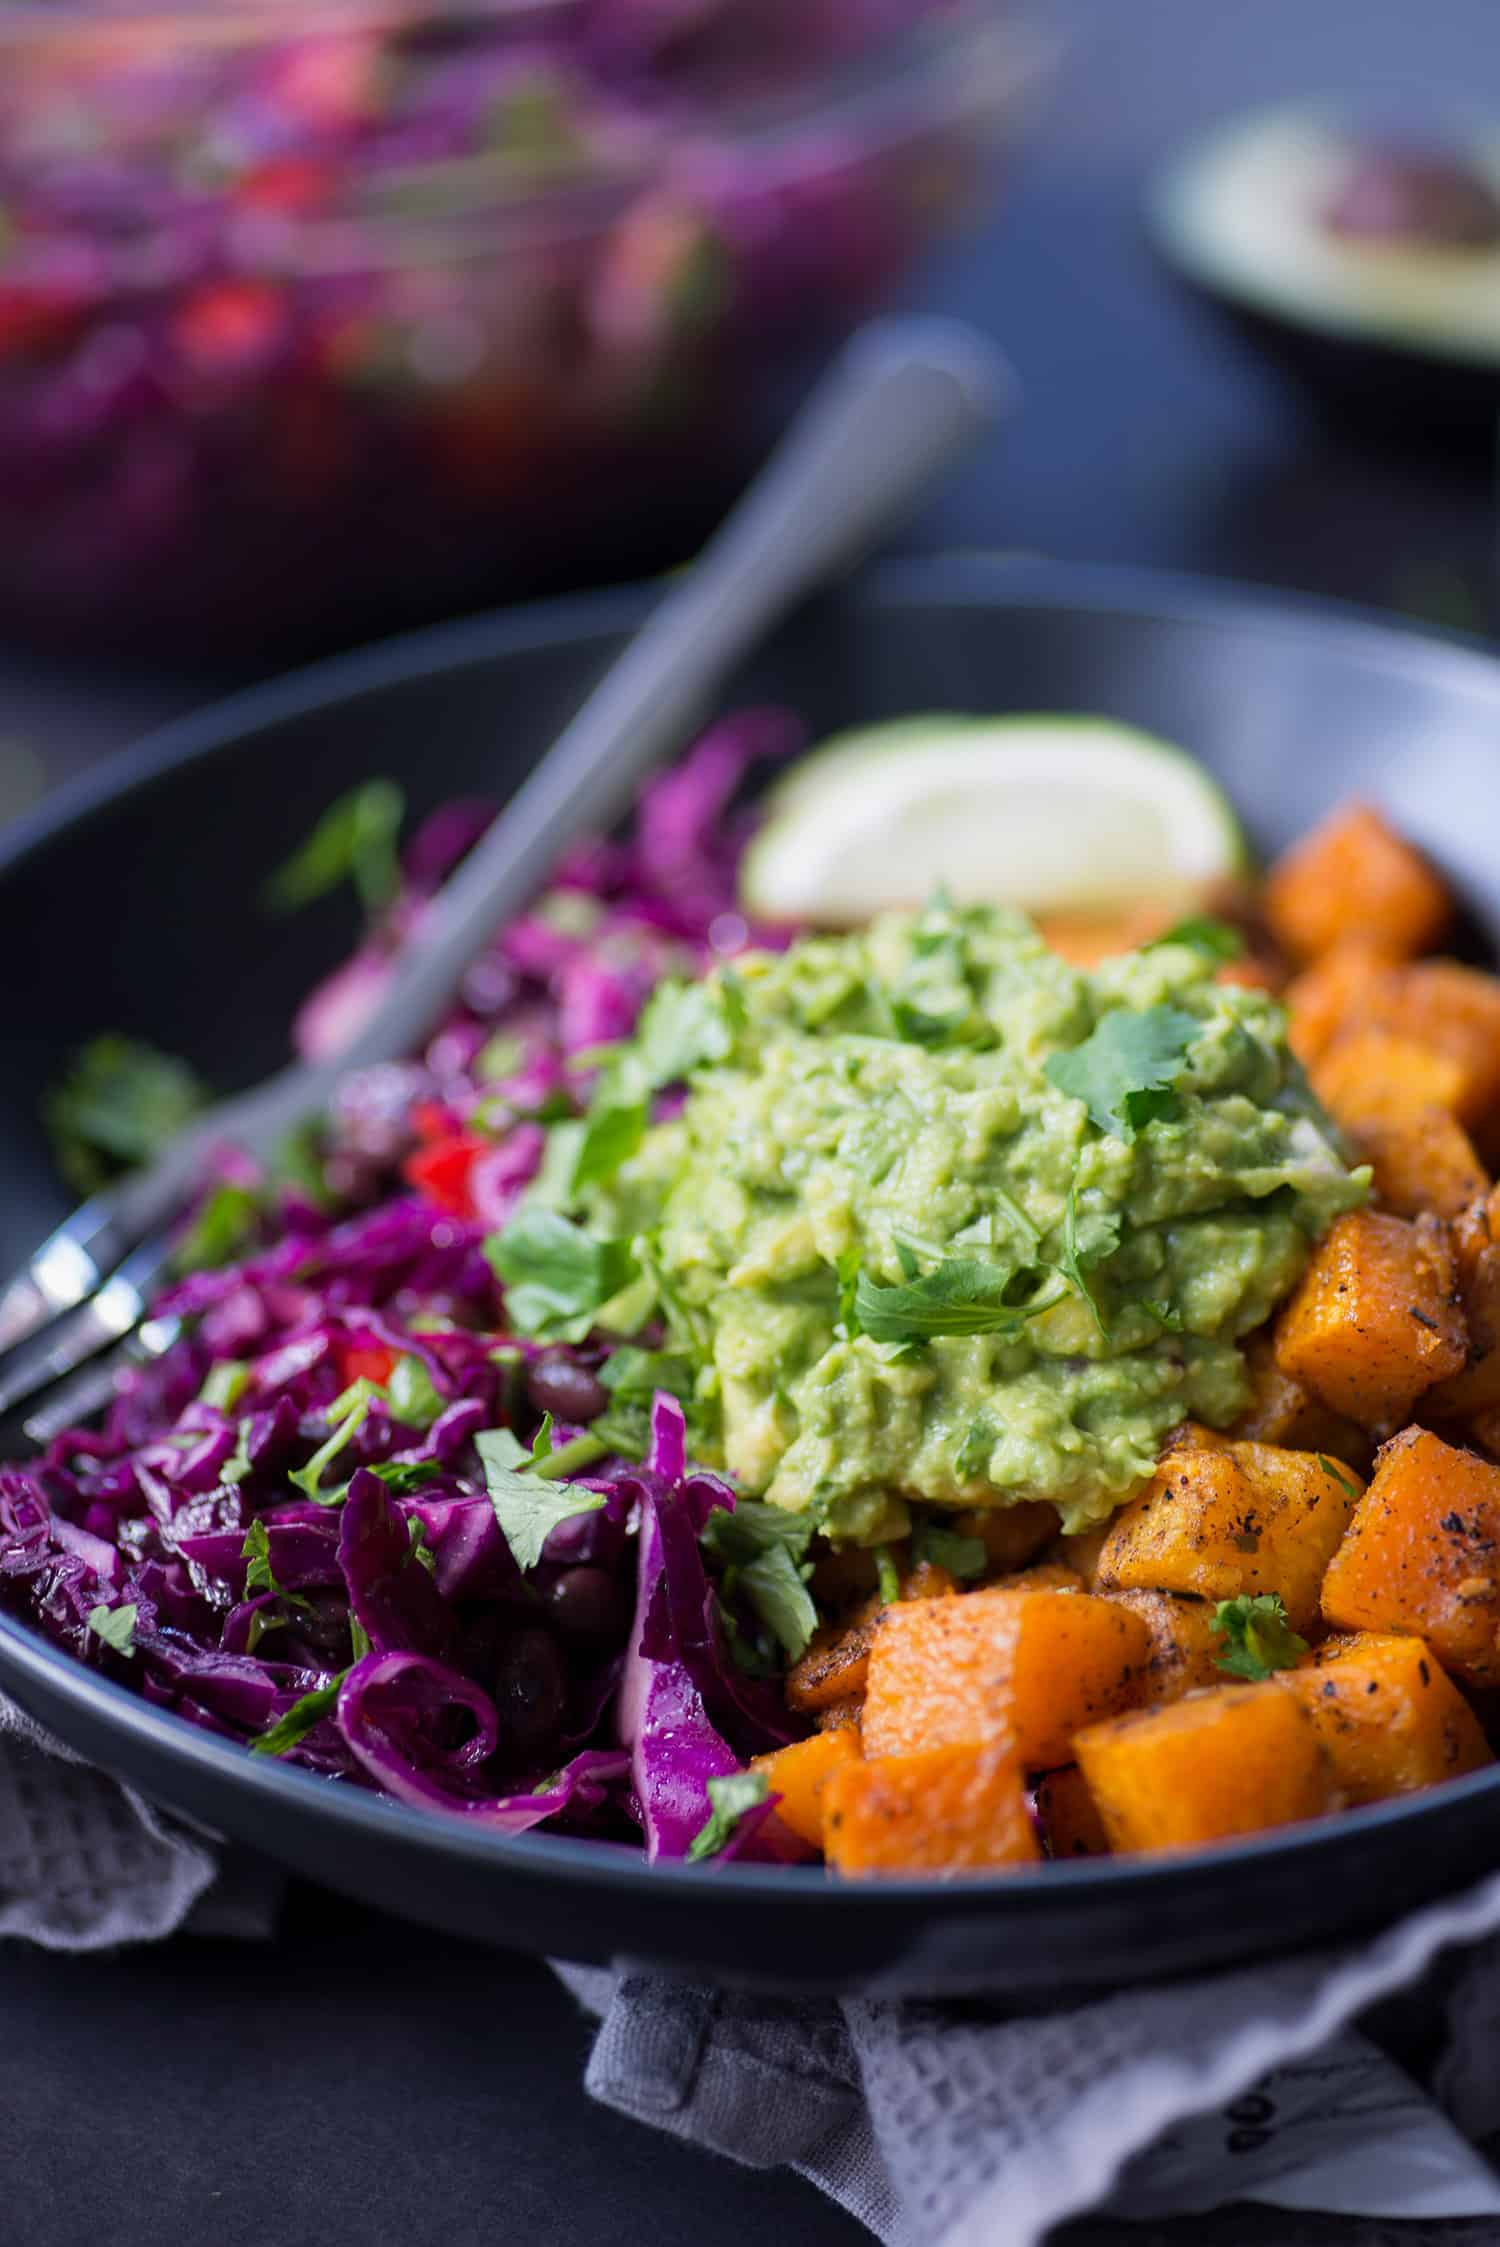 Roasted Butternut Squash Burrito Bowls! You will love these gluten-free and vegan burrito bowls. Roasted and spiced butternut squash cubes, black bean and cabbage slaw with homemade guacamole. Vegan & Gluten-Free | www.delishknowledge.com